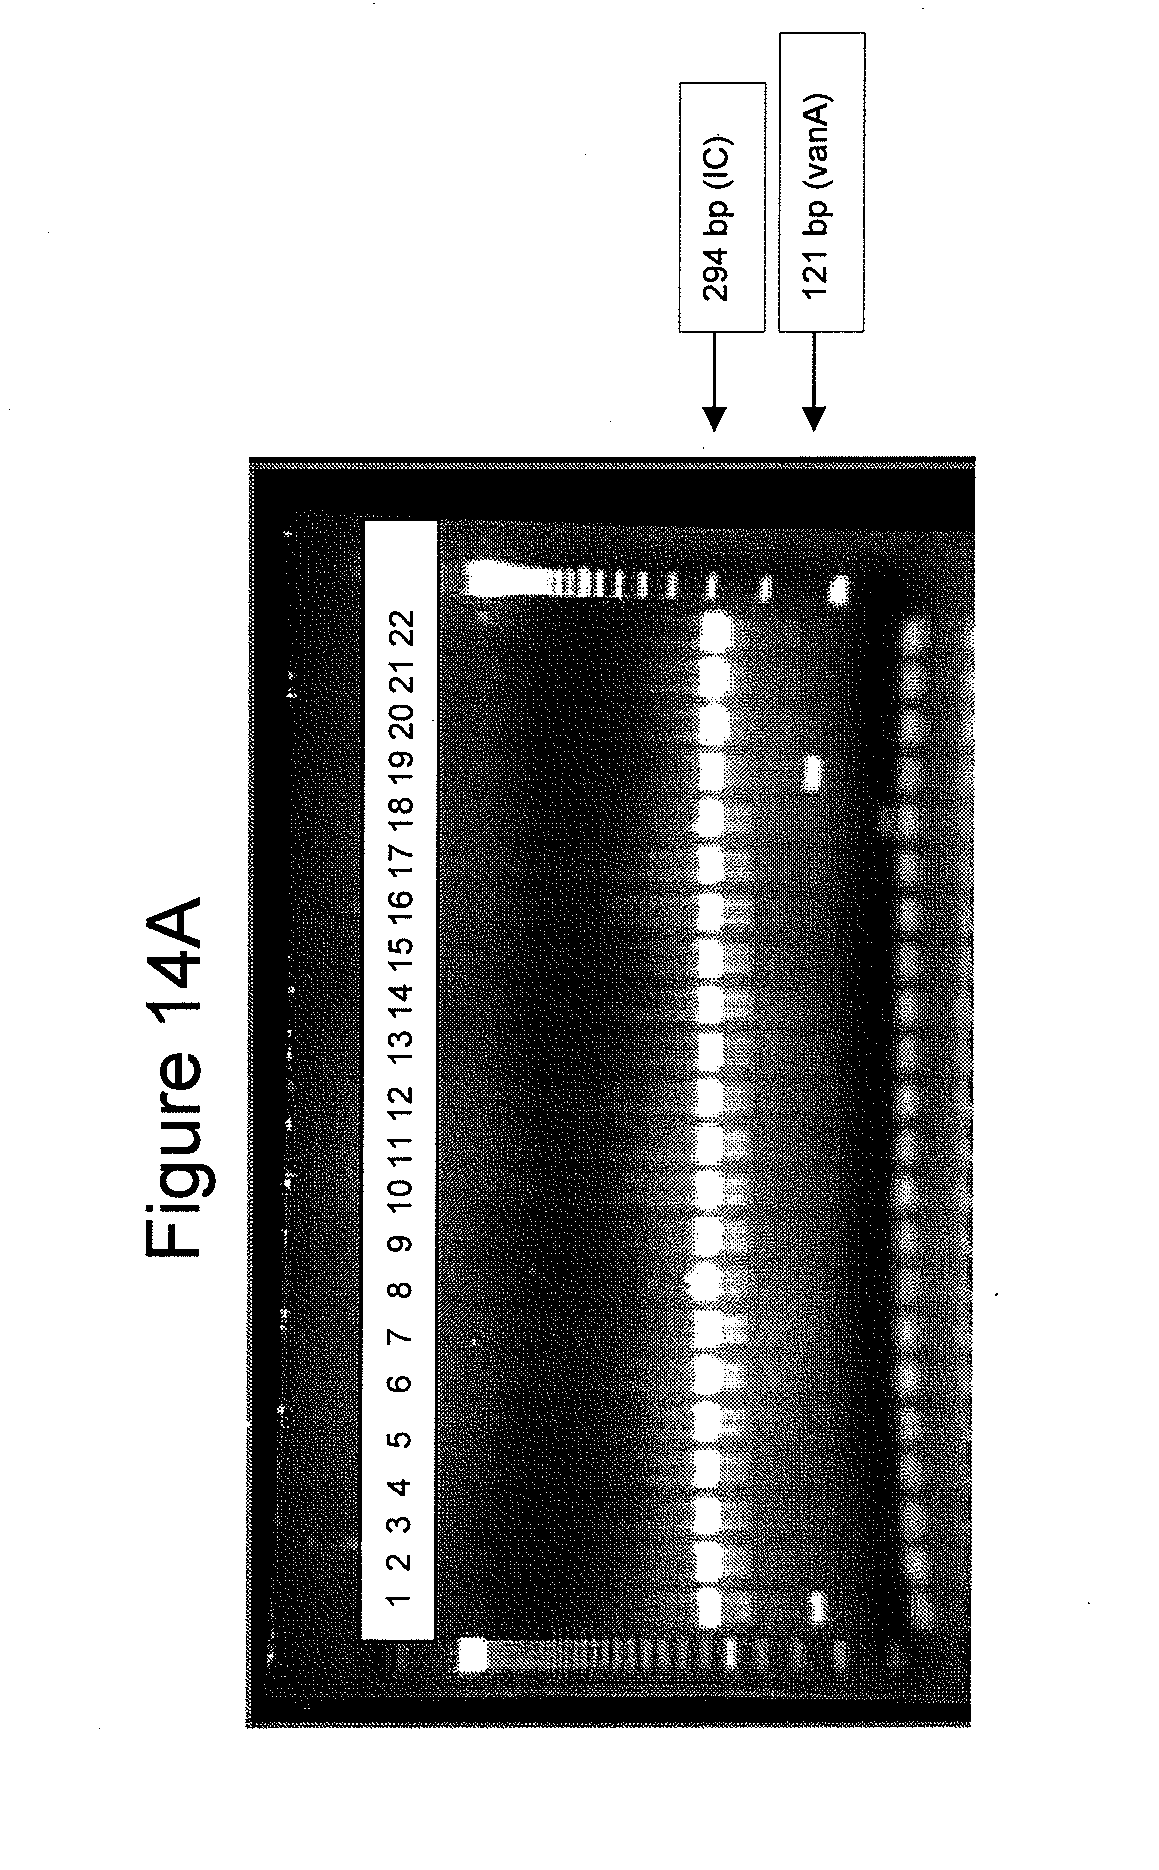 US20140127684A1 - Highly conserved genes and their use to